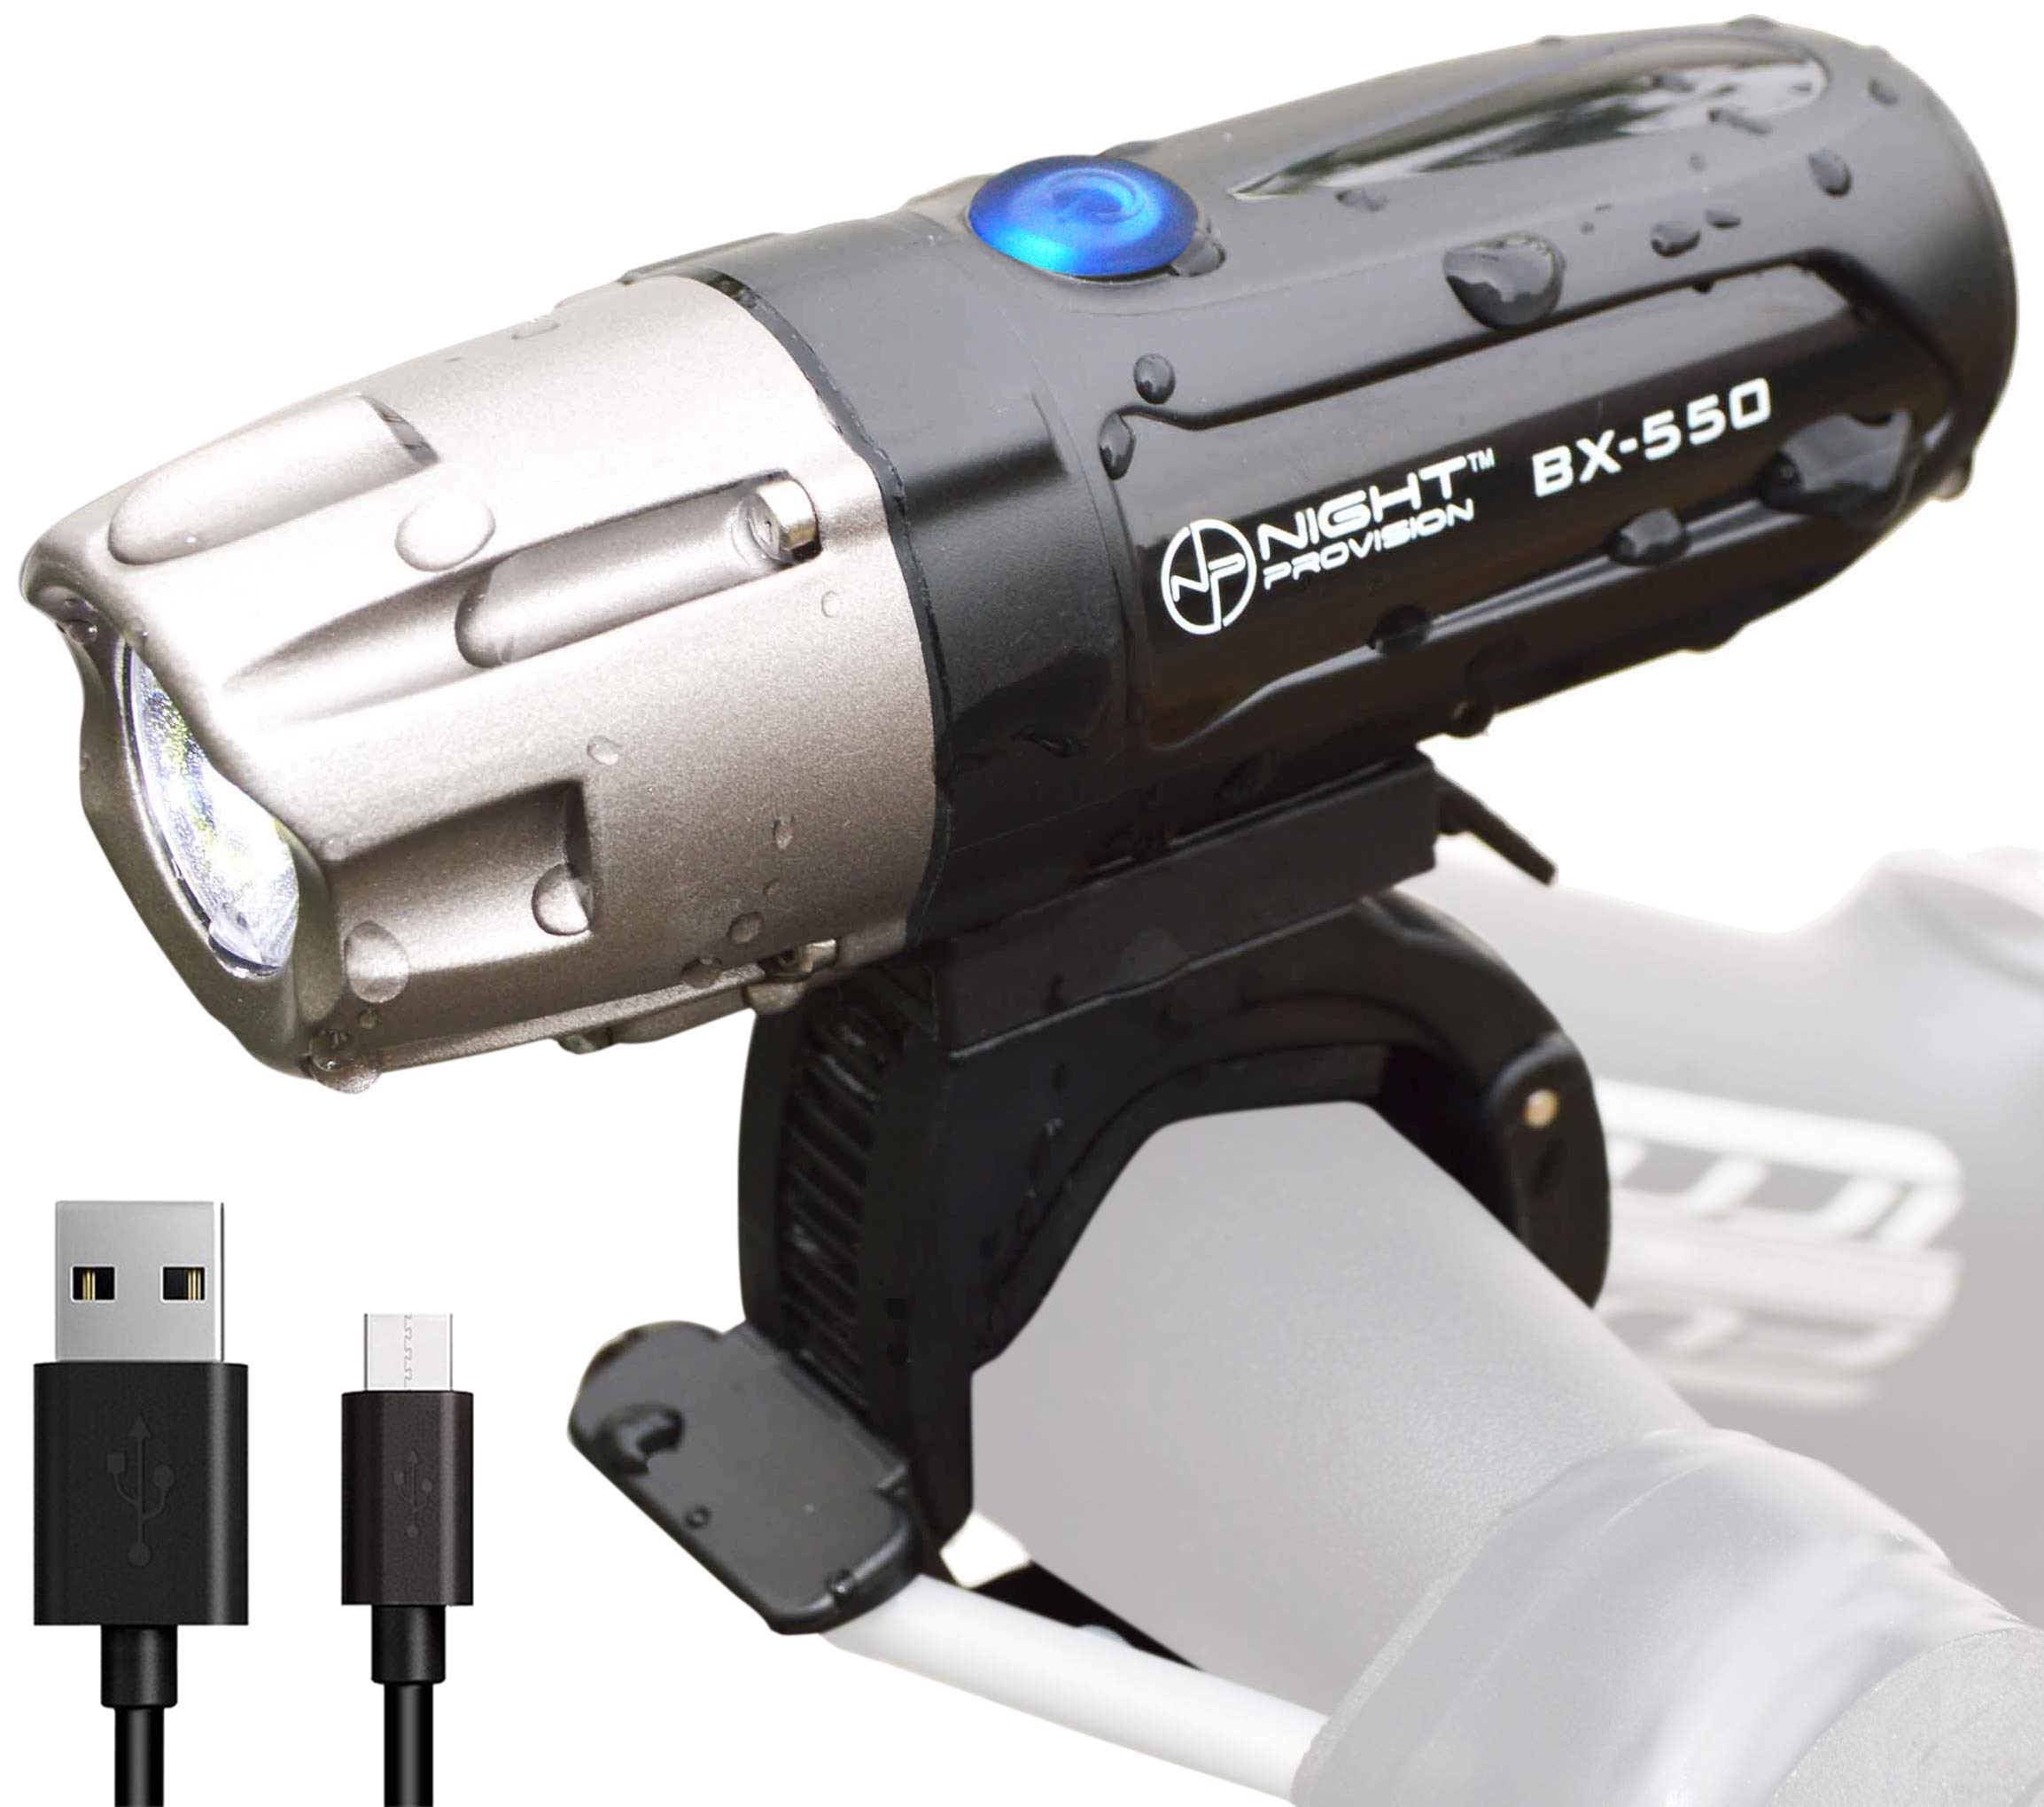 Night Provision Powerful BX-550 USB Bike Light with Removable Battery - Front L2 LED Headlight - 550 Lumens MAX - Rechargeable Bicycle Lights